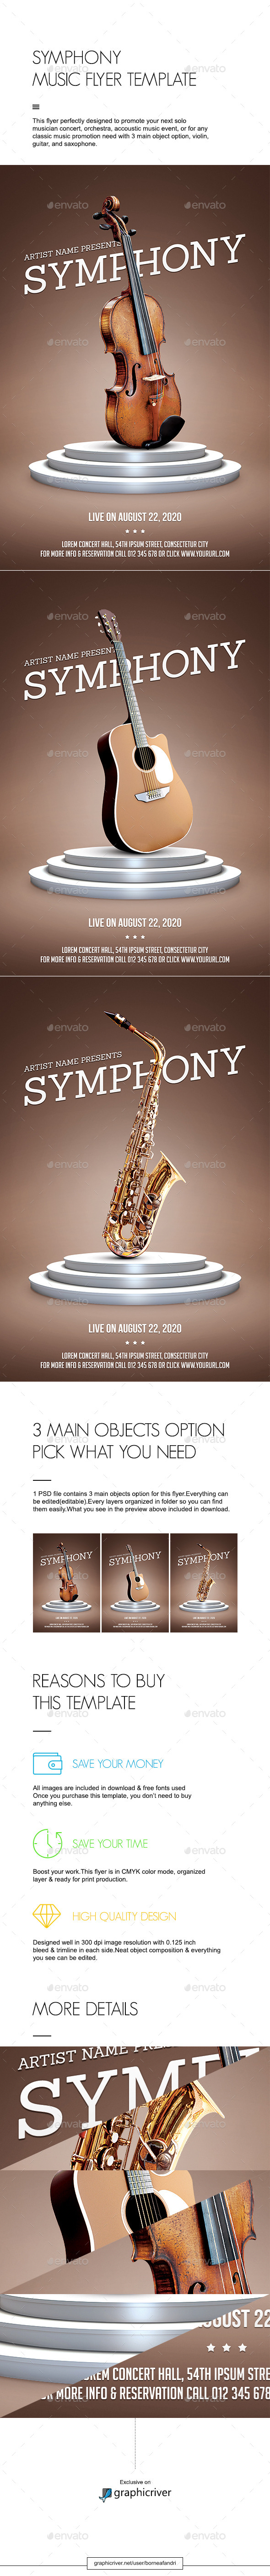 Symphony Music Flyer Template - Concerts Events